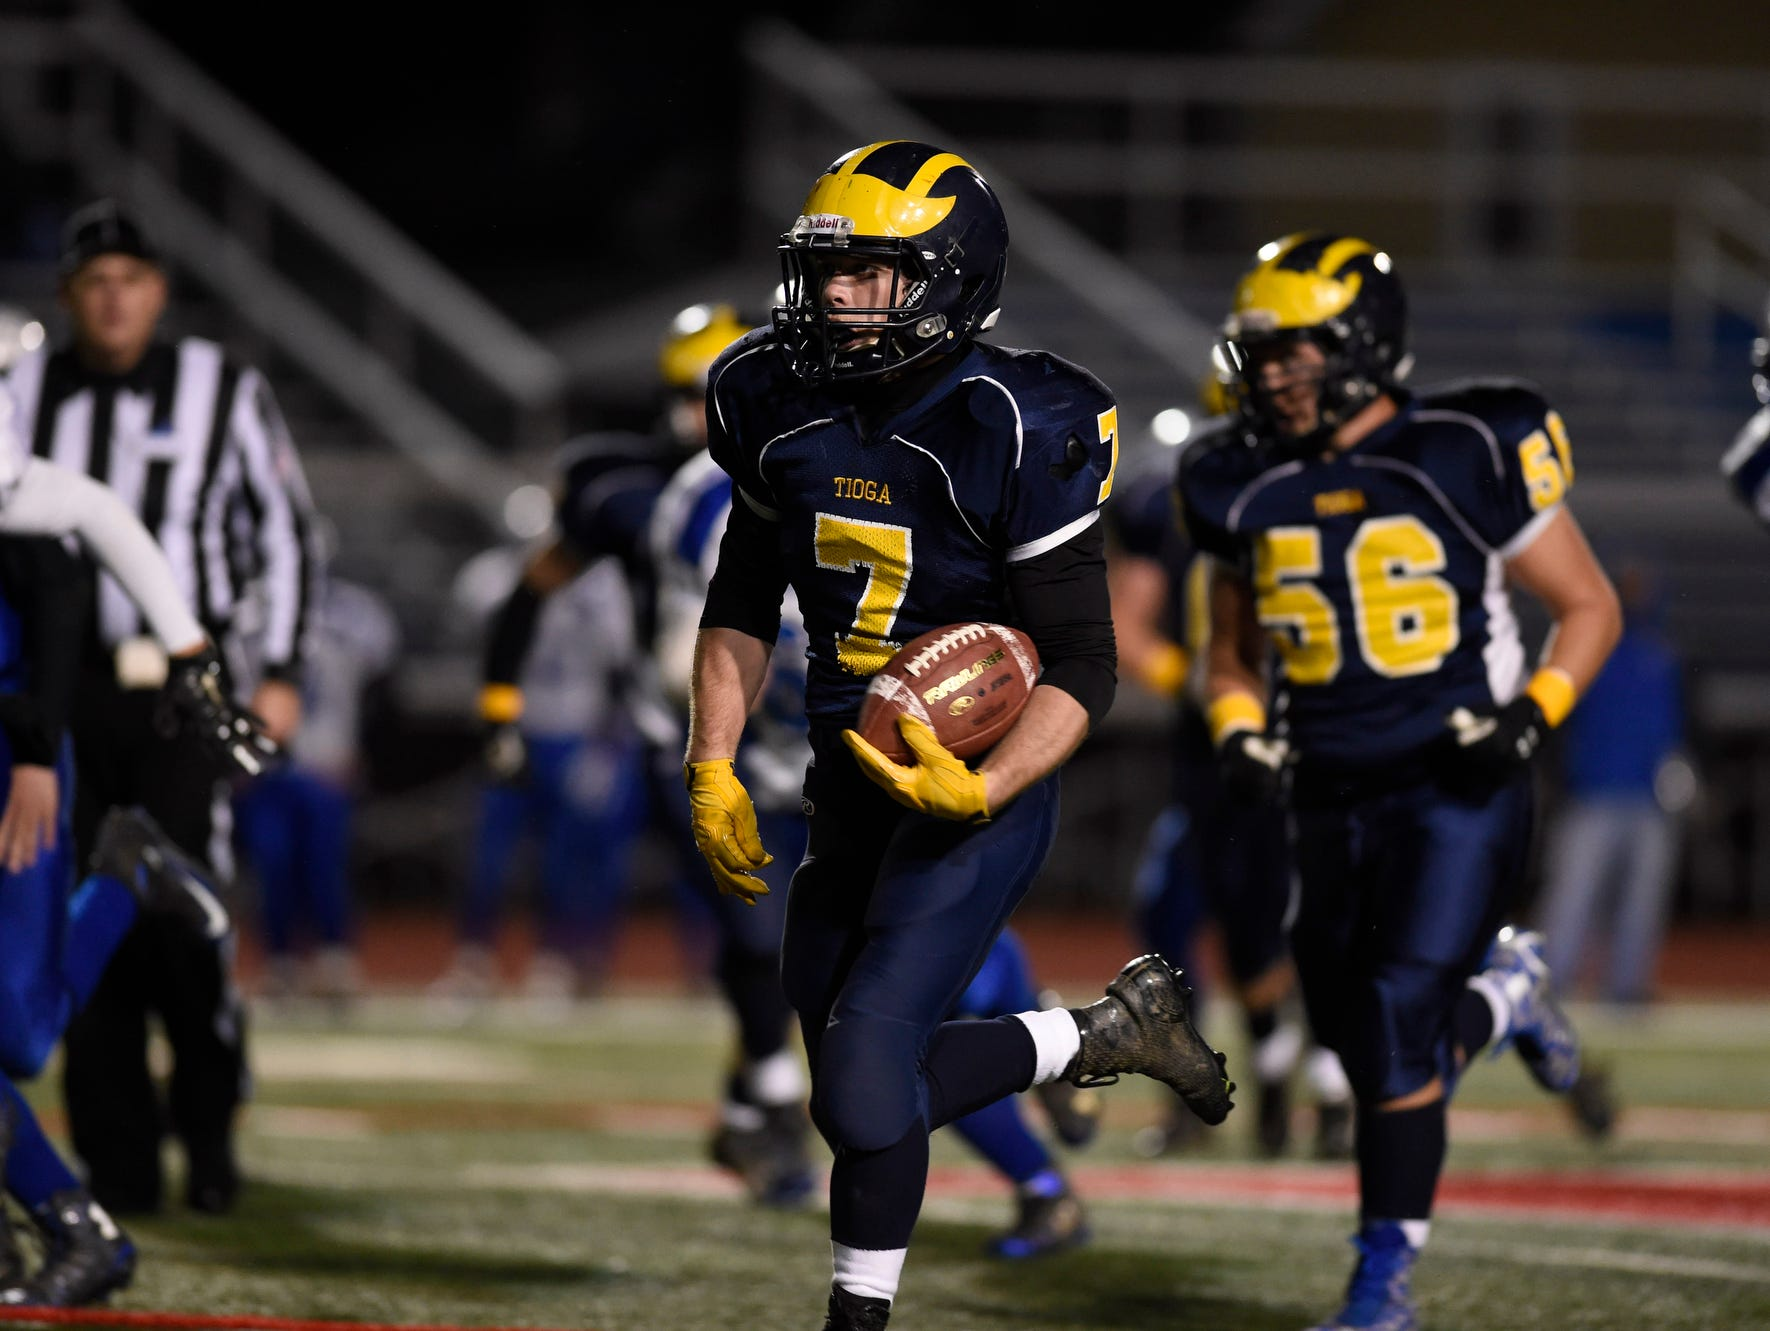 Tioga scored early and often against Sandy Creek in their Class D state playoff quarterfinal matchup at Binghamton Alumni Stadium on Friday .